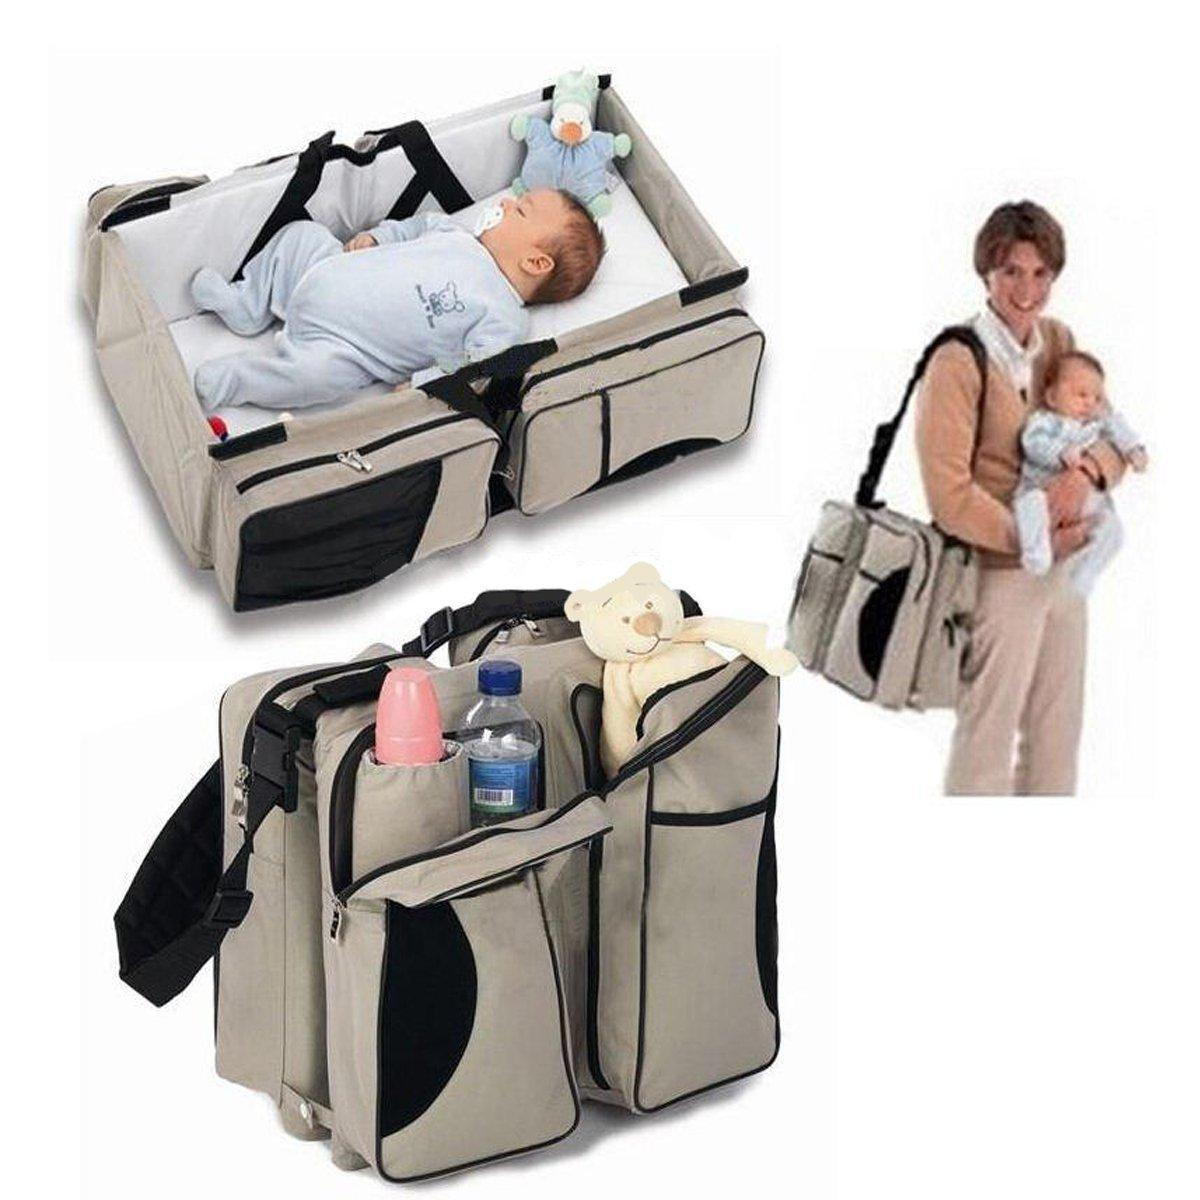 Crib for sale sulit com - Newborn Crib For Sale Newborn Babies Portable Travel Bag Type Crib Bed Mummy Bag Type